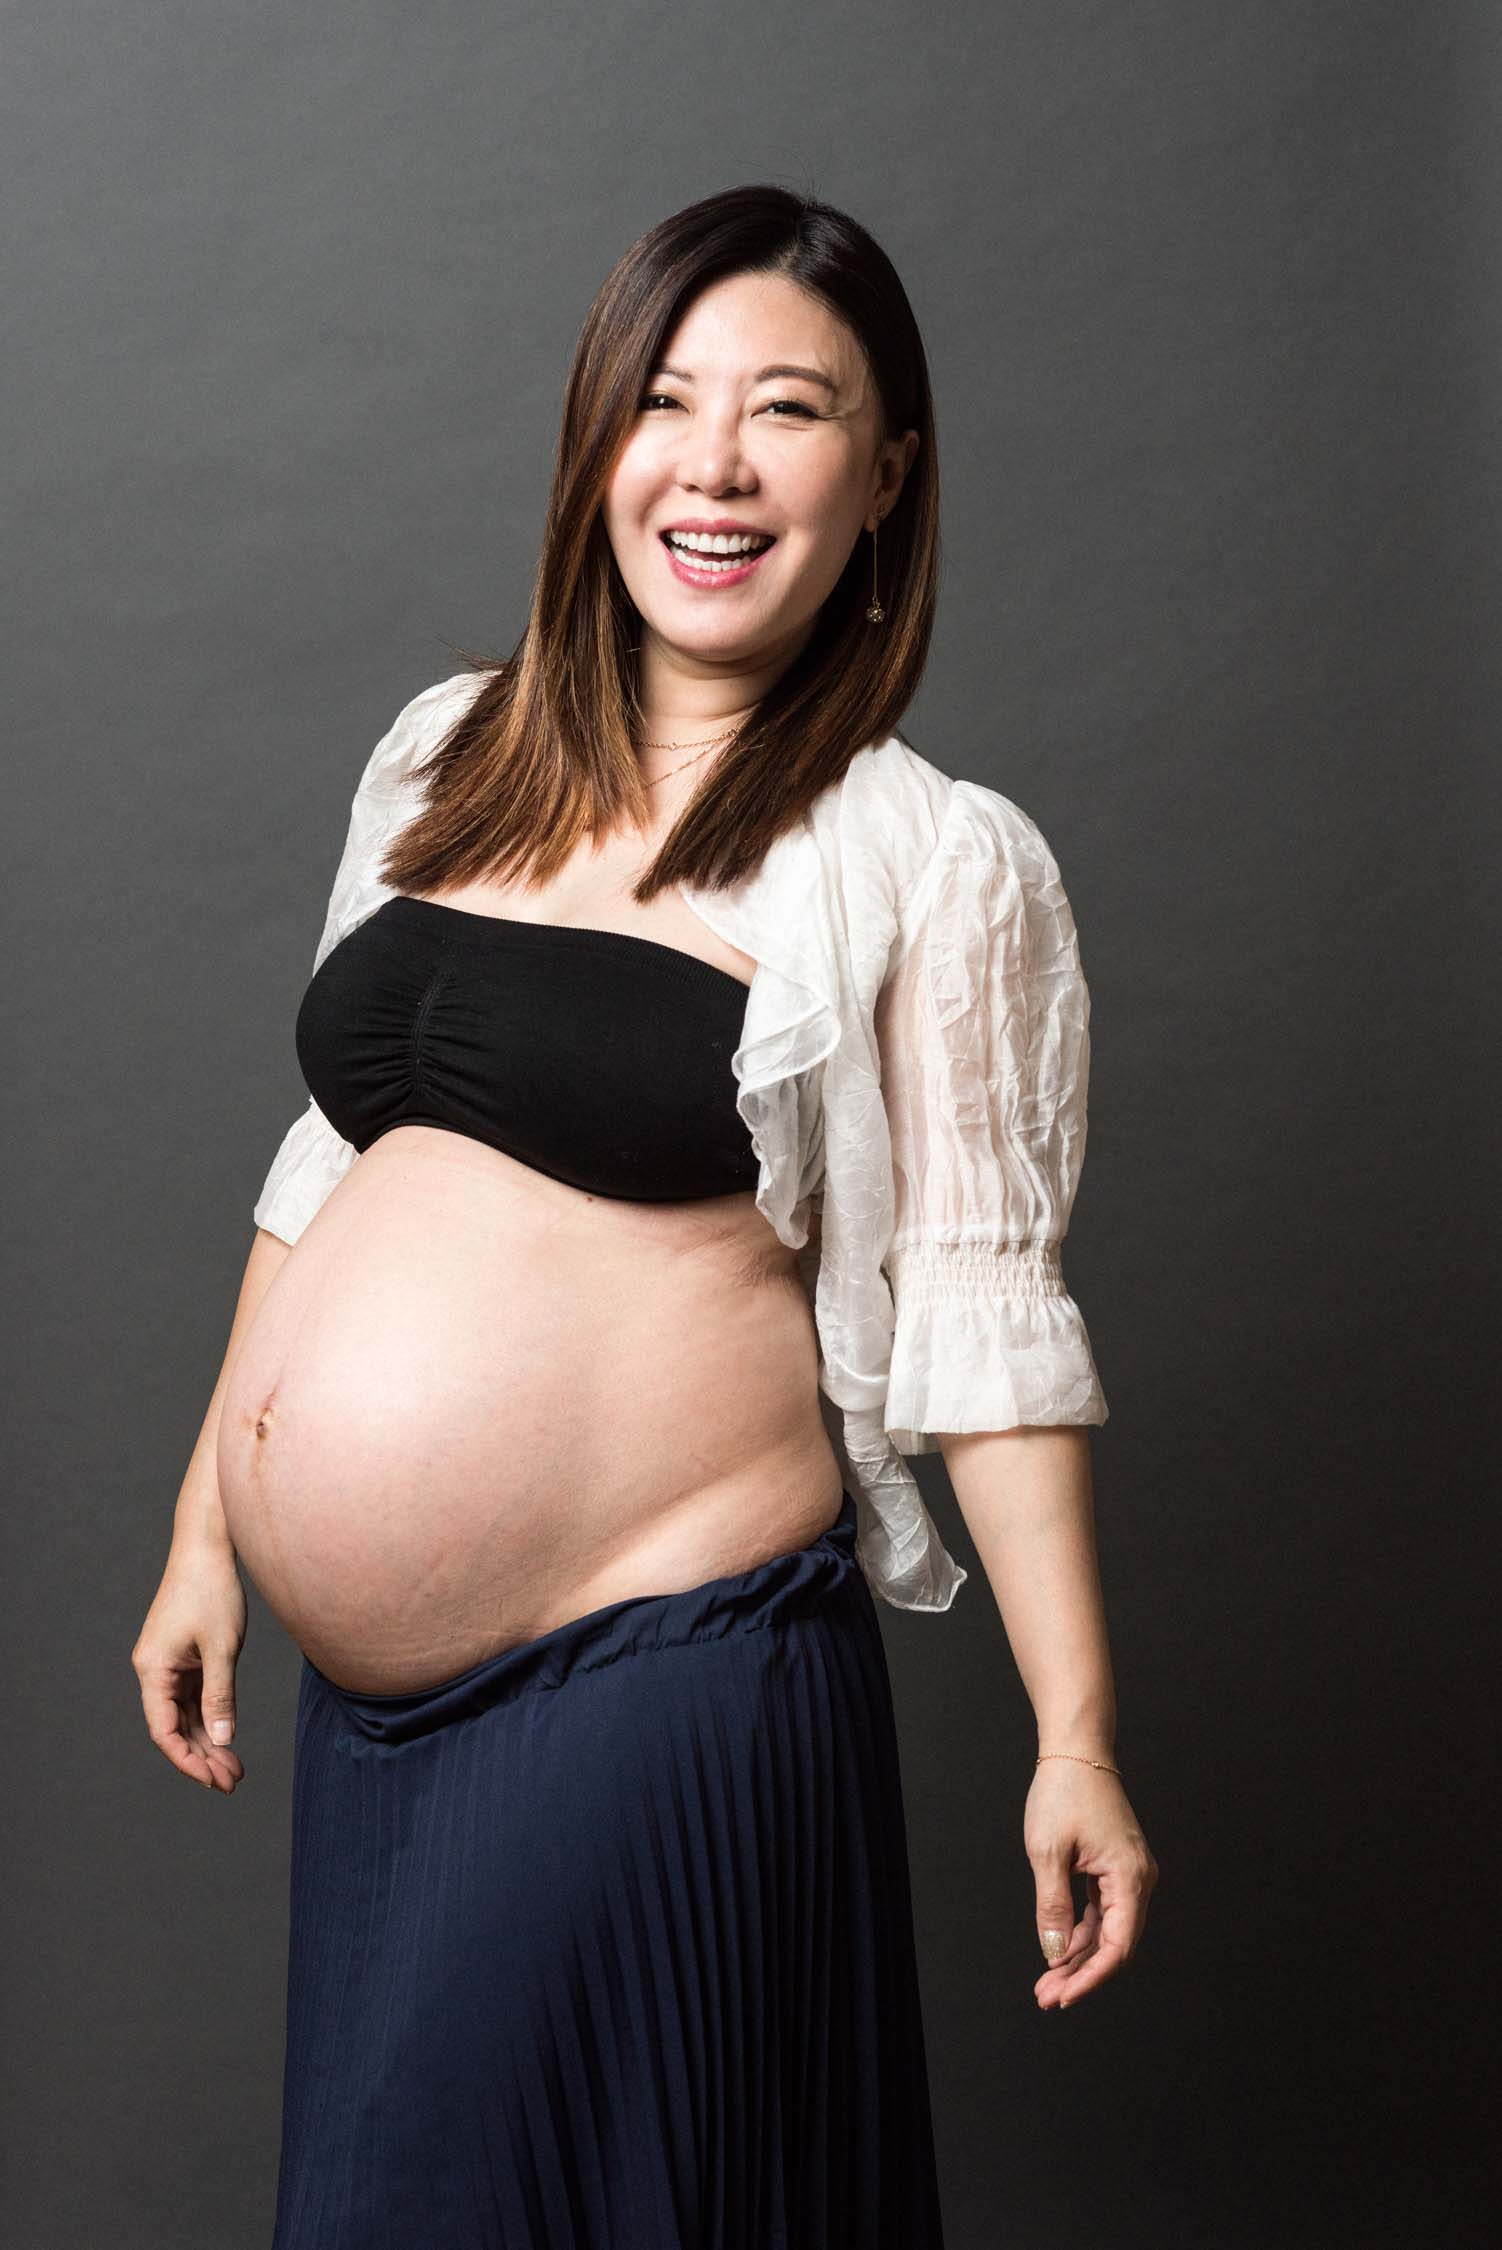 7_goldengatepark_maternity_photographer.jpg